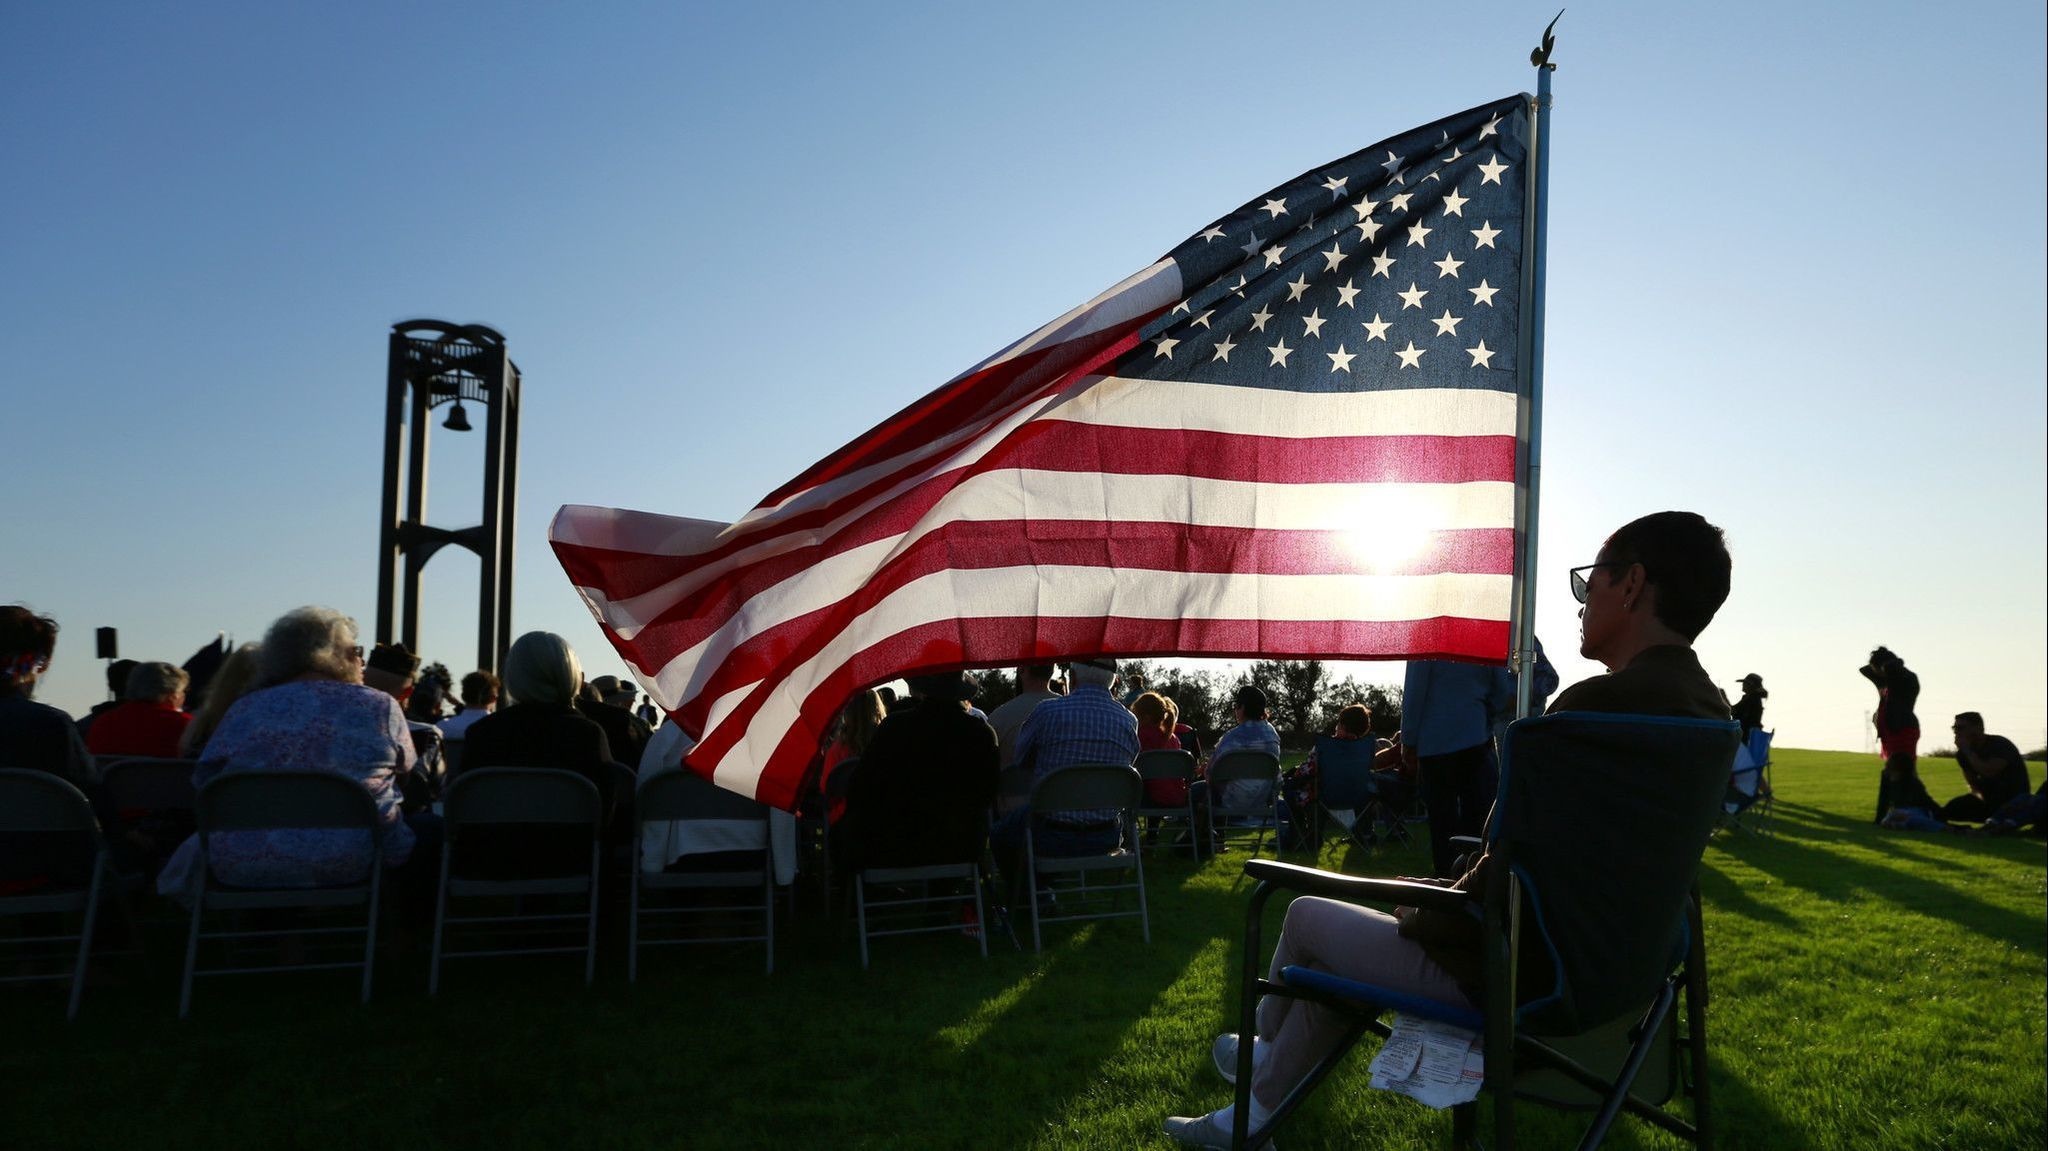 Veterans Day remembrance at Miramar National Cemetery marks the 100-year anniversary of the end of WWI | San Diego Union Tribune